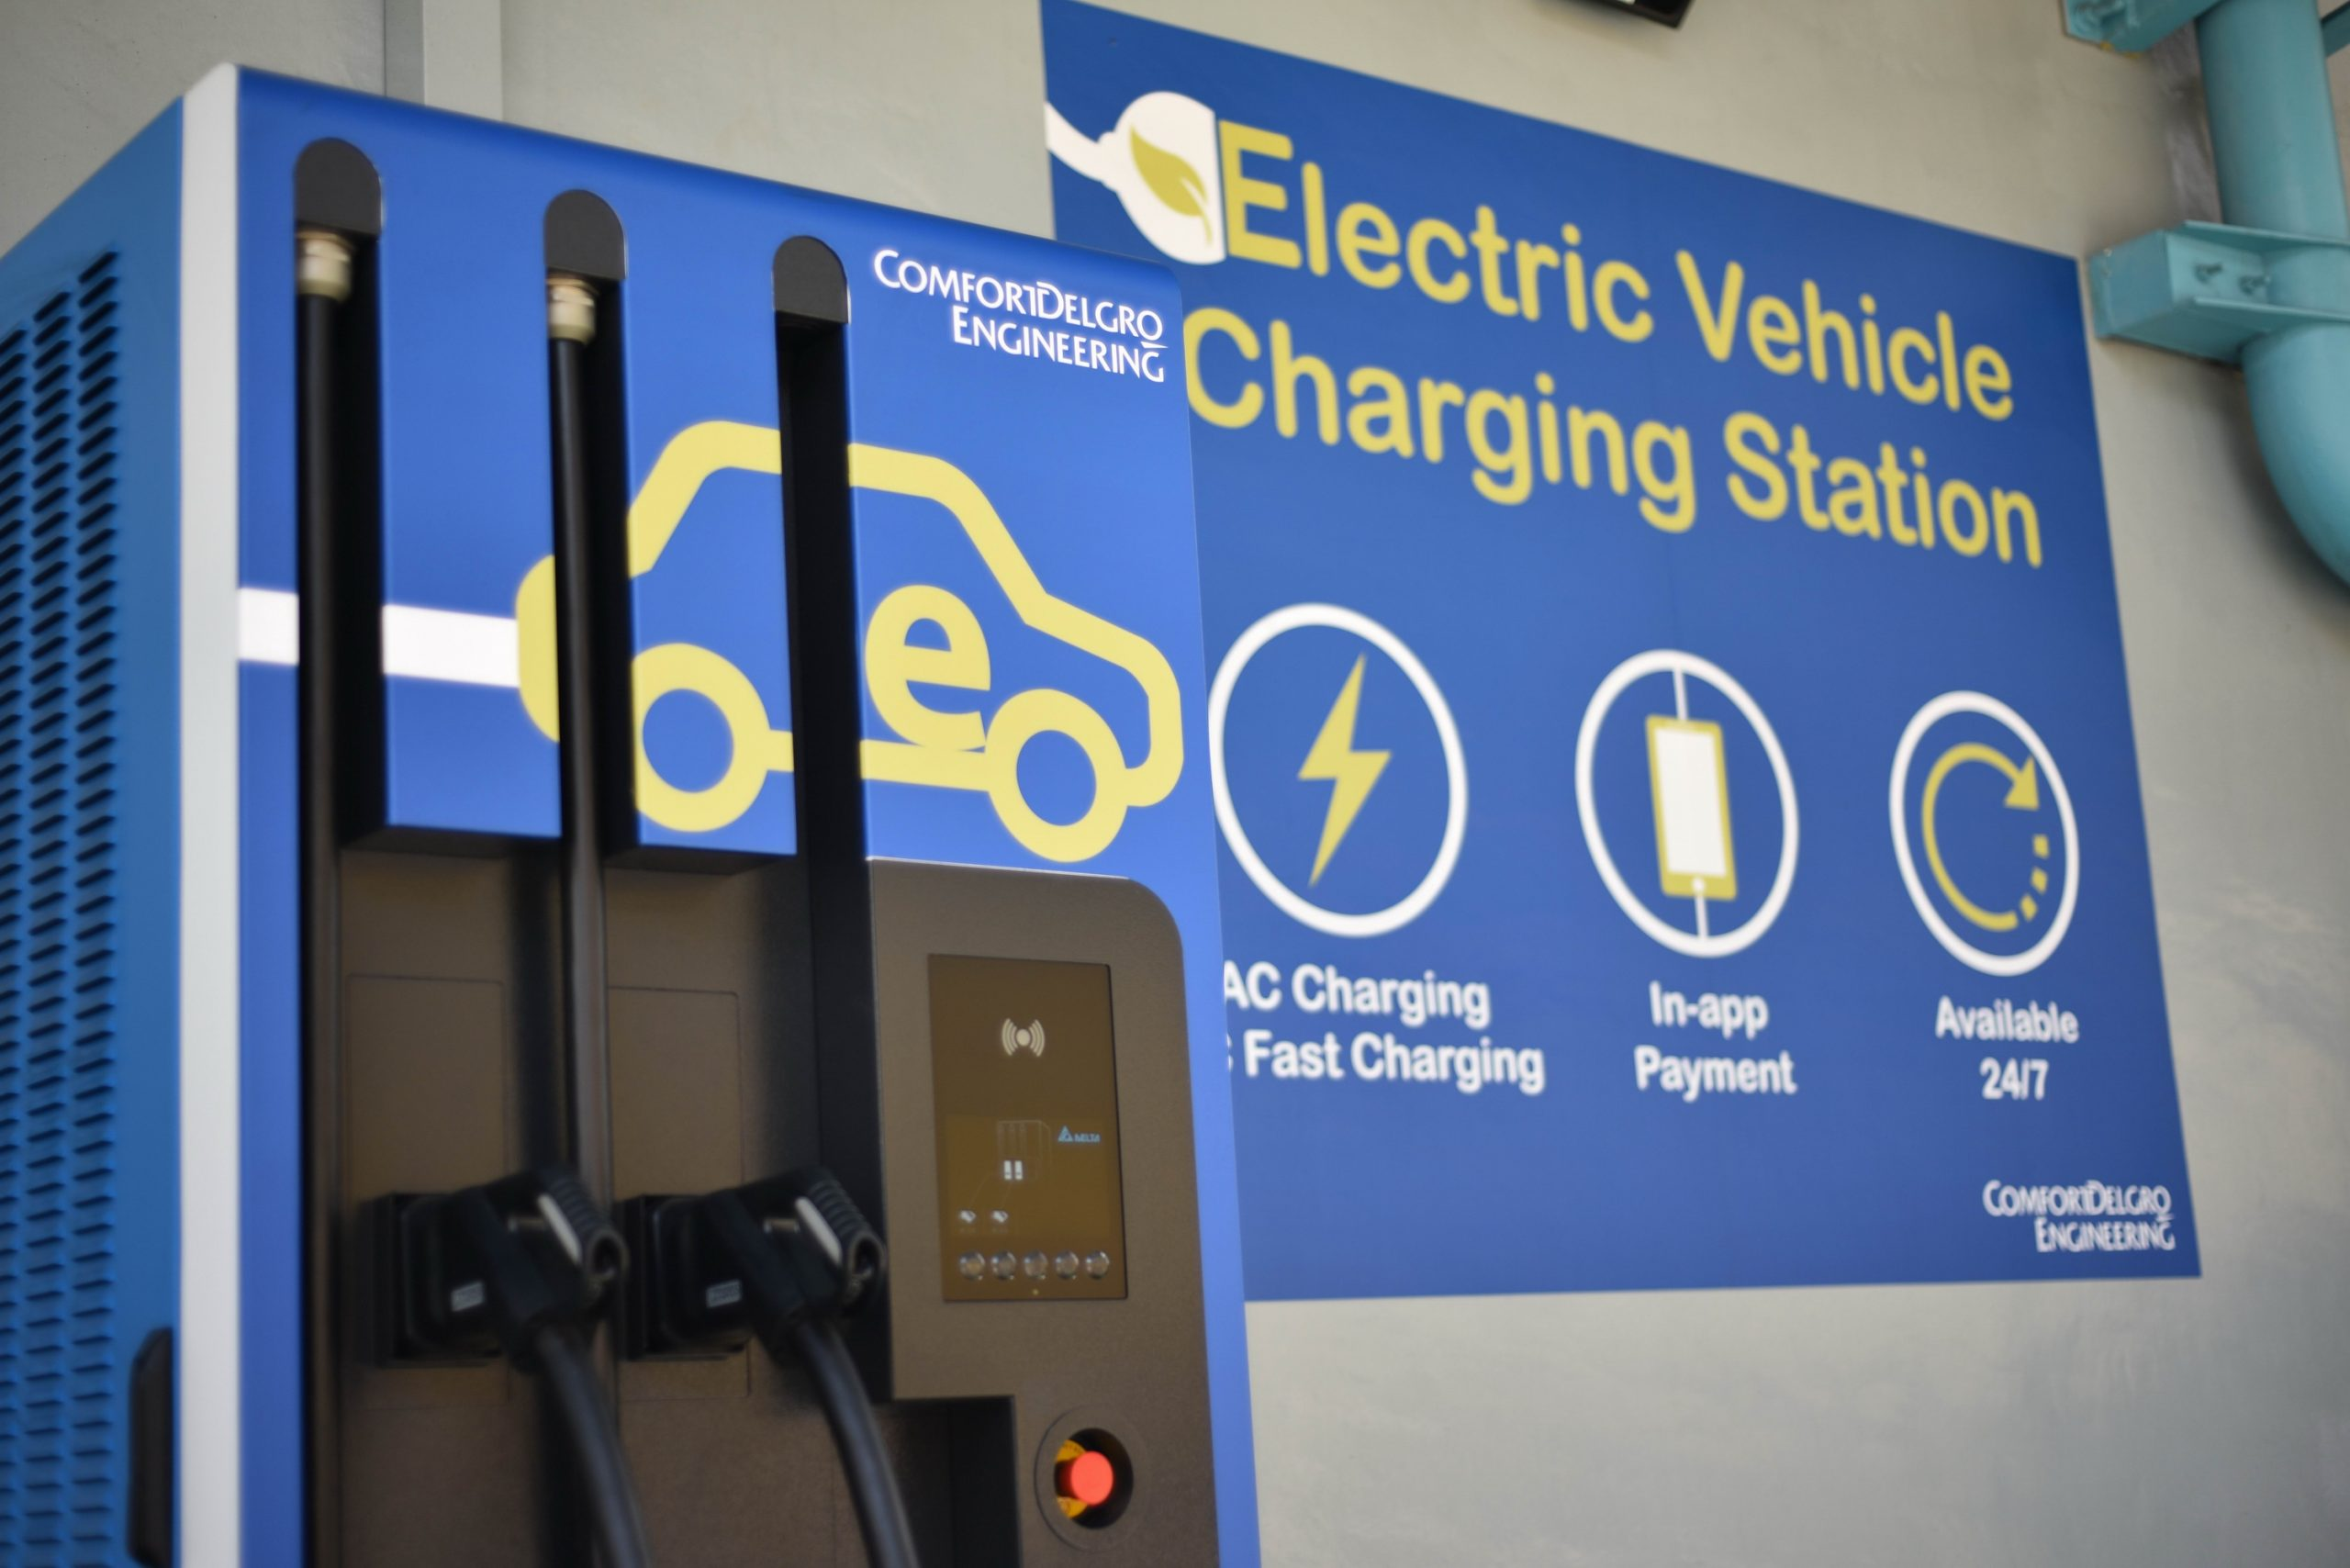 ComfortDelGro To Introduce DC Fast Charging for Electric Vehicles